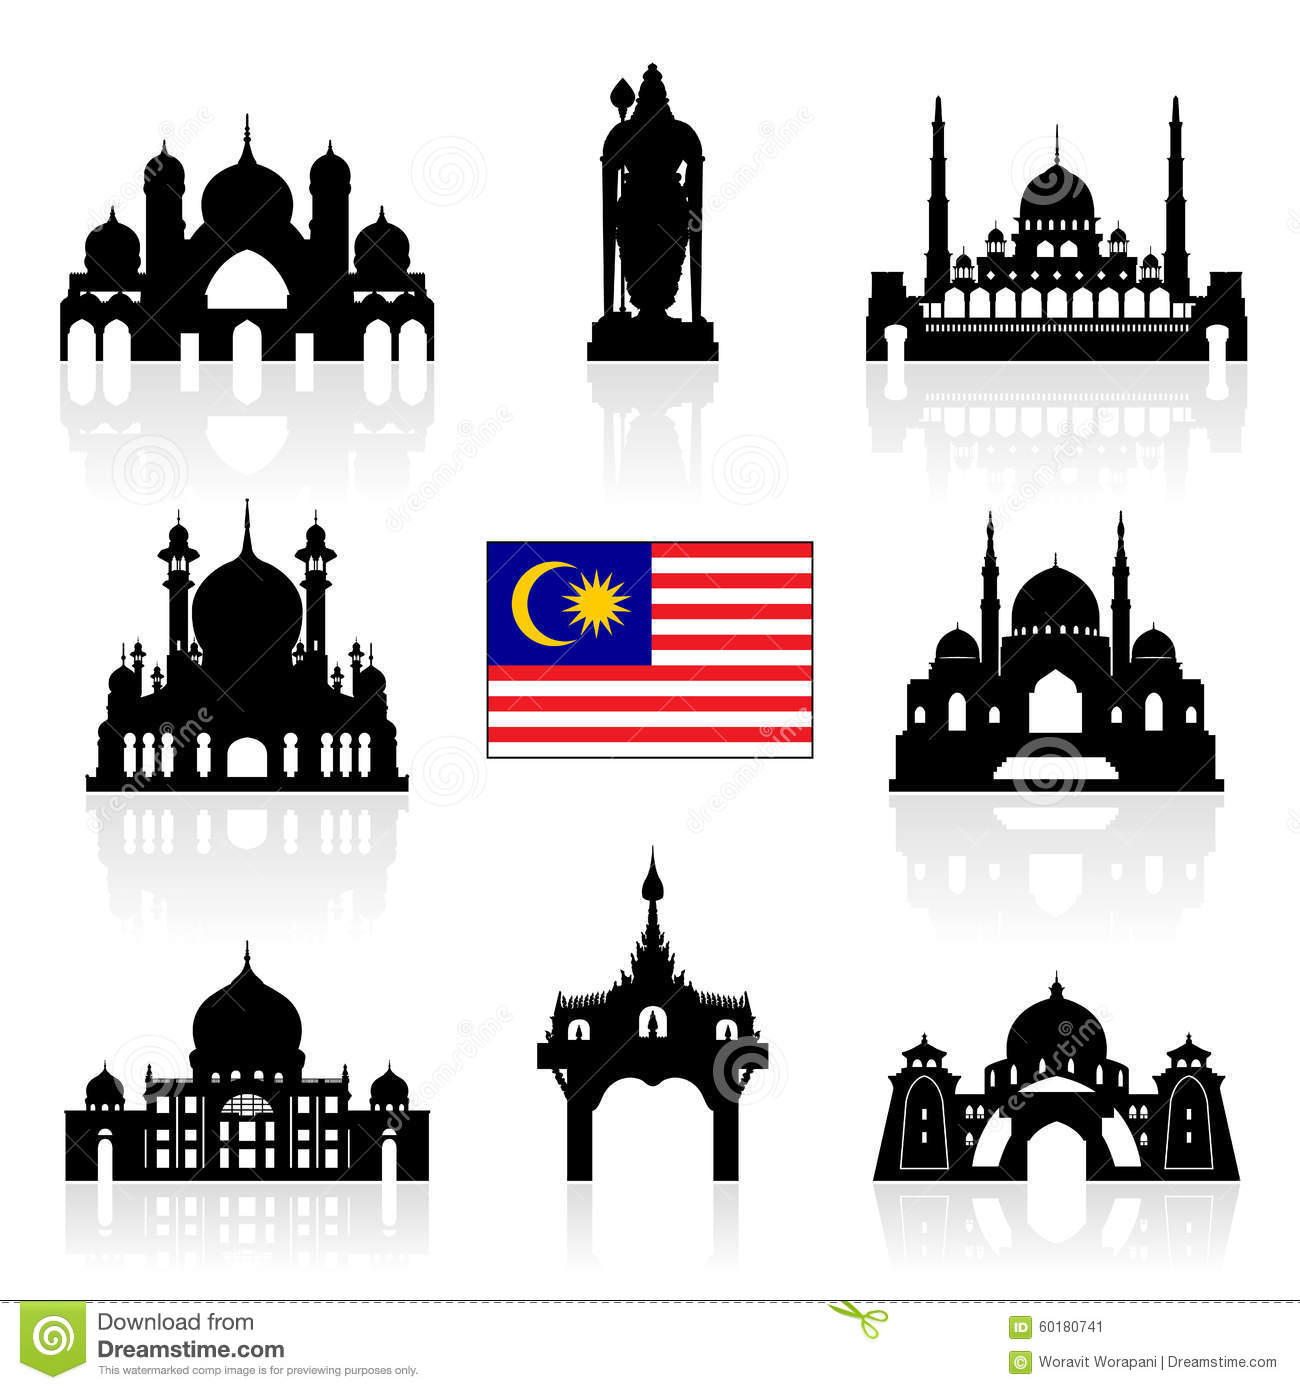 carlsberg background and history in malaysia Carlsberg background and history in malaysia harvard case study solution and analysis of harvard business case studies solutions - assignment helpin most courses studied at harvard business schools, students are provided with a case study.